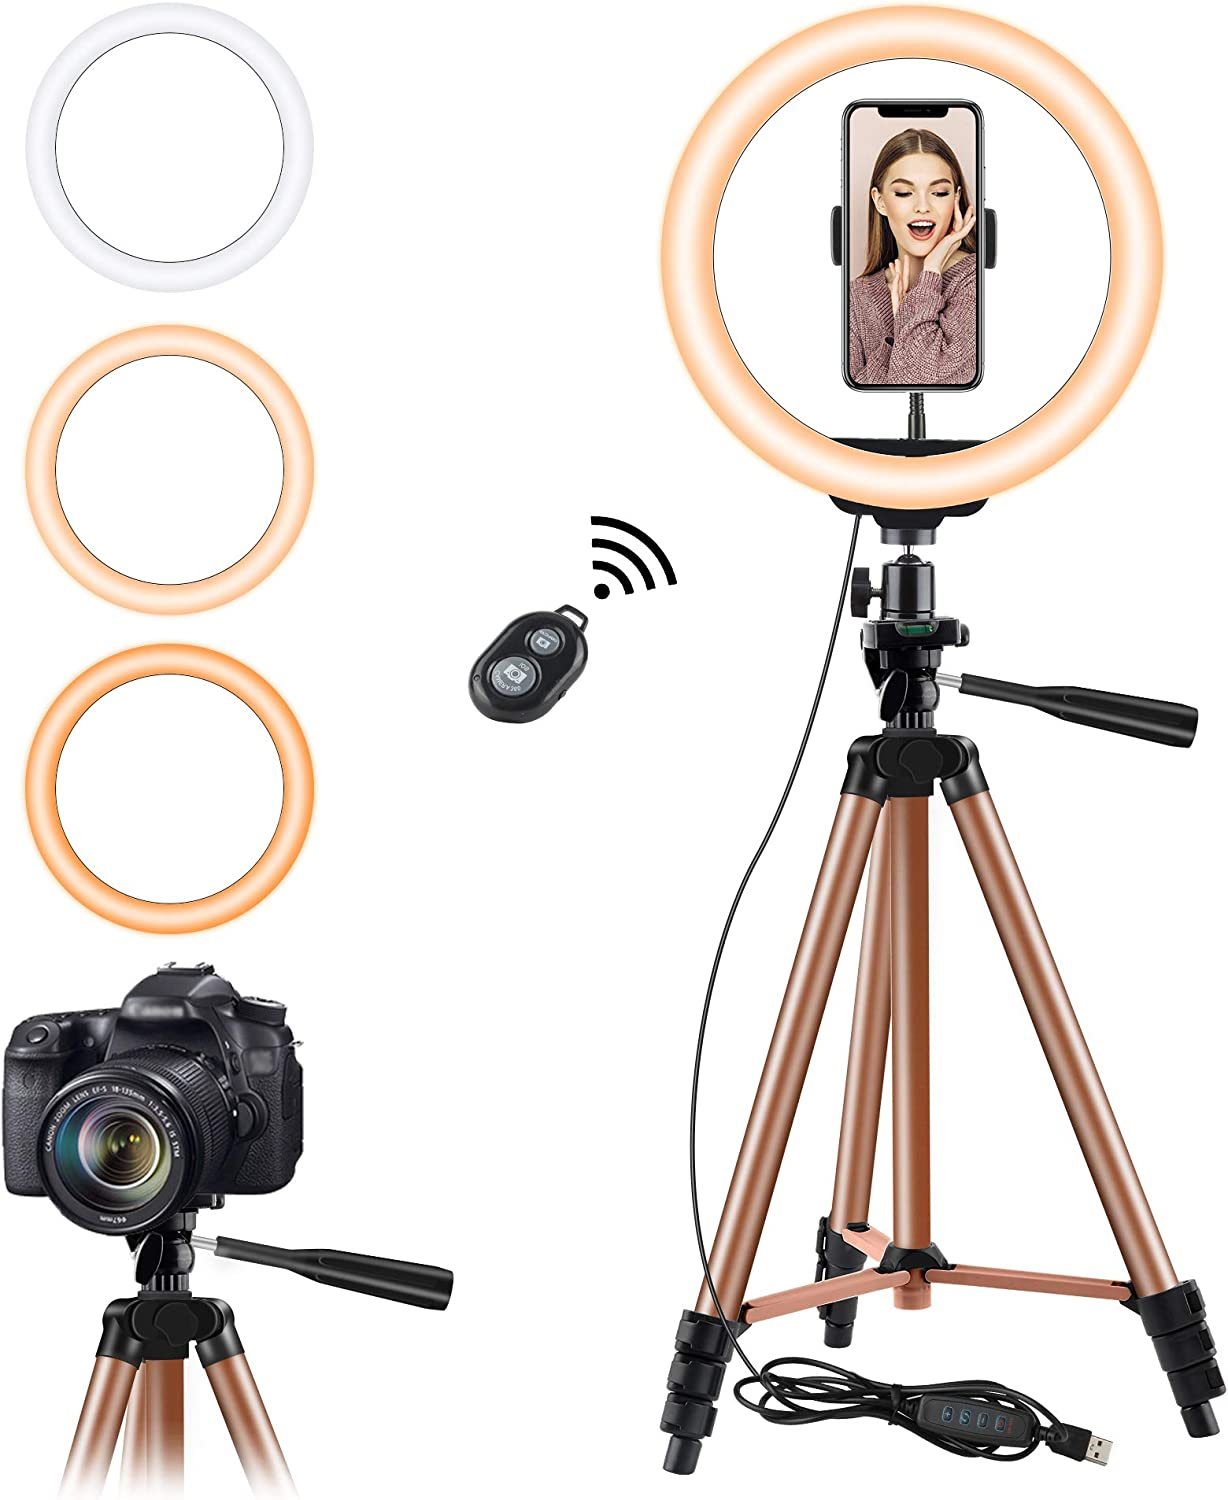 10.2'' Selfie Ring Light with Tripod Stand, Eocean 50in Tripod for YouTube Stream/Makeup, Mini Led Camera Ringlight for Vlog/Video/Photography Compatible with iPhone 11/XR/XS/8/7/6, Android (Brown)